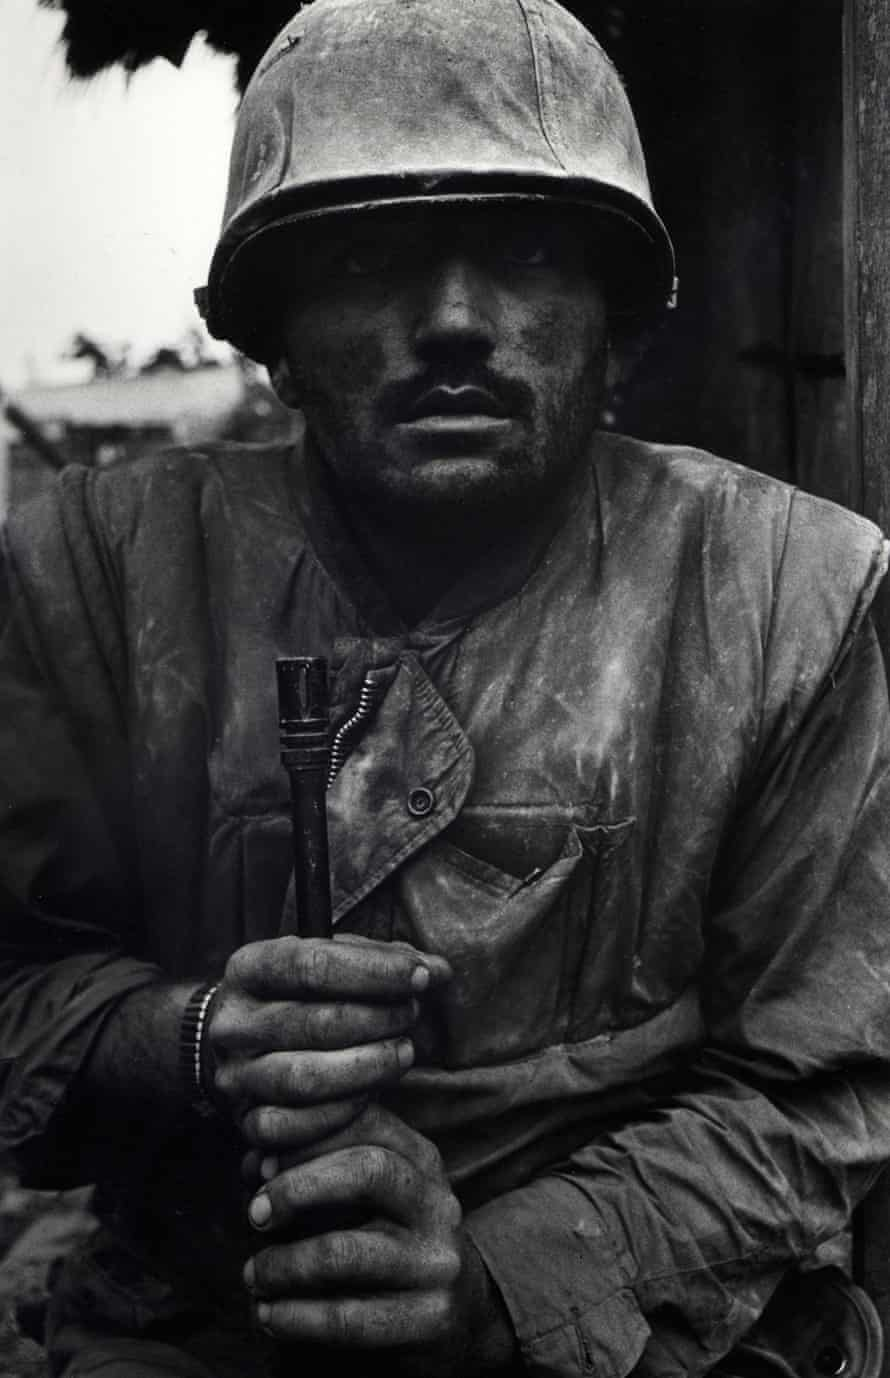 Don McCullin's 'incomparable' Shell Shocked US Marine, Hue, Vietnam, 1968, 'his dark eyes sightless with shock'.